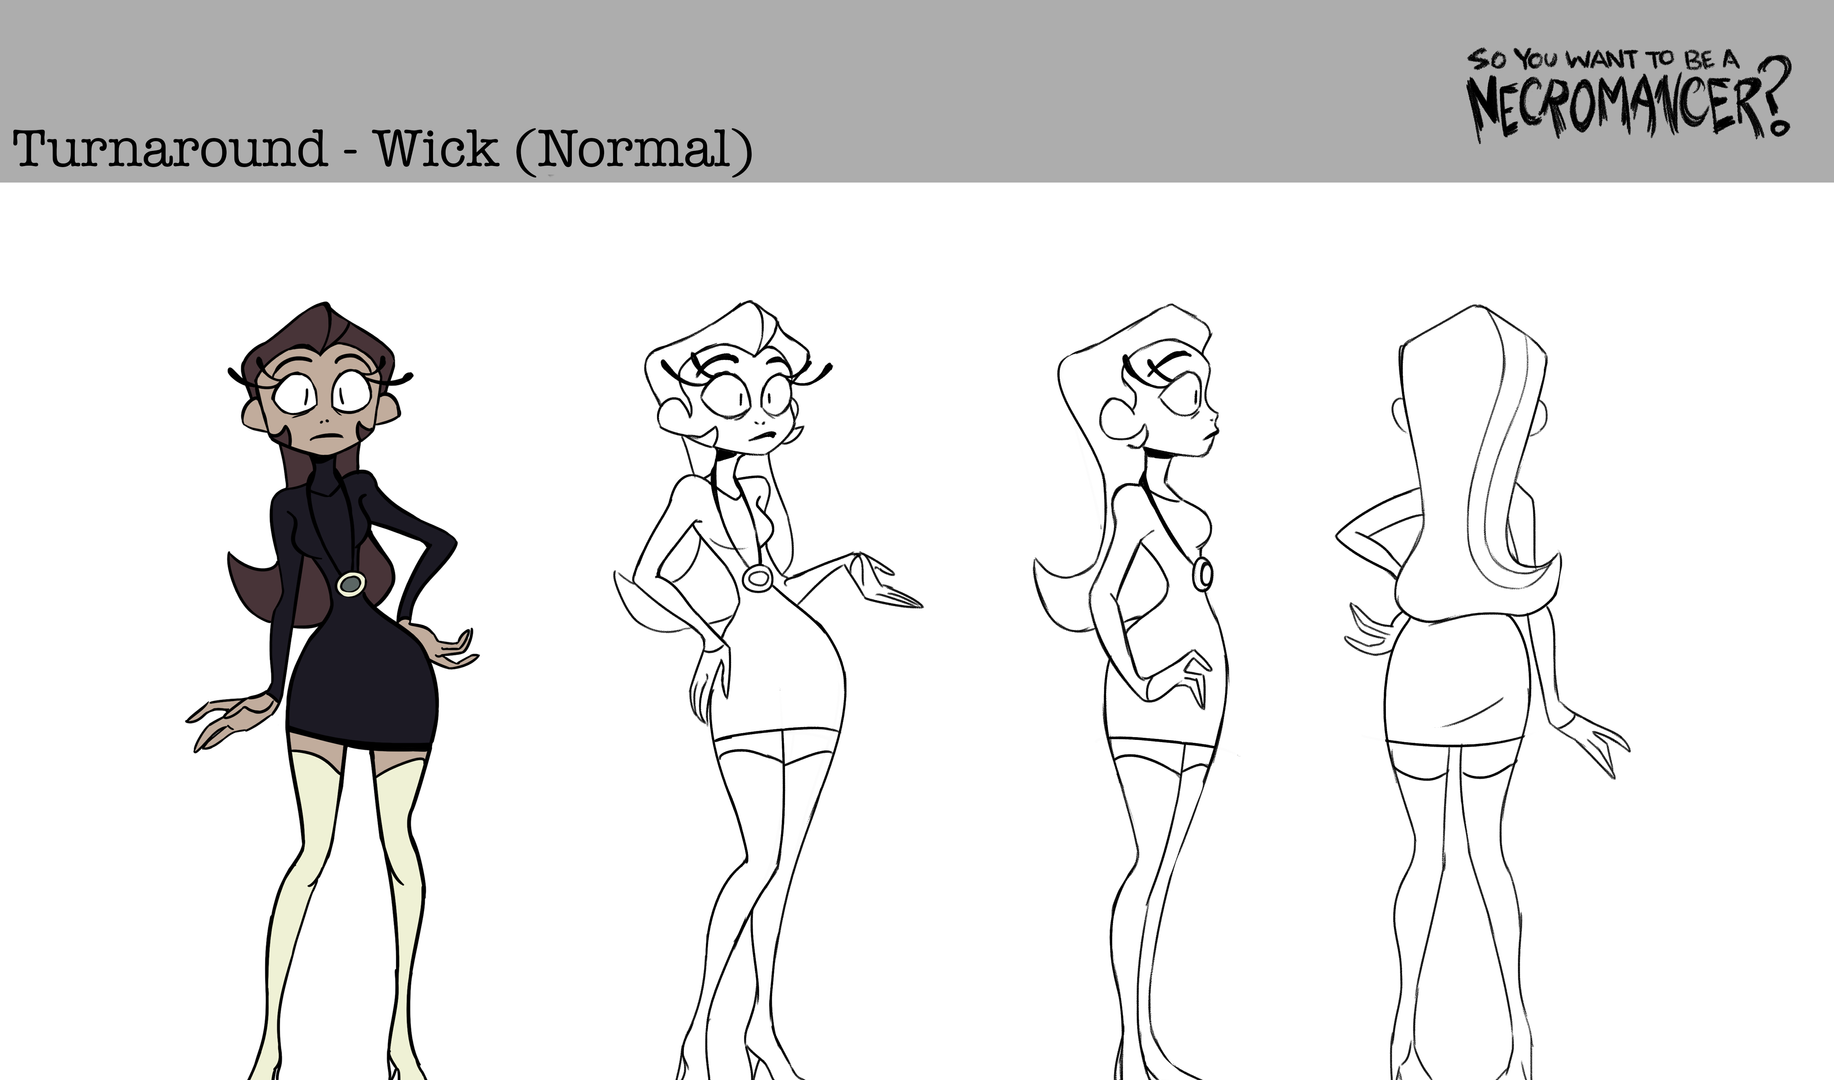 Turnaround - Wick (Normal)